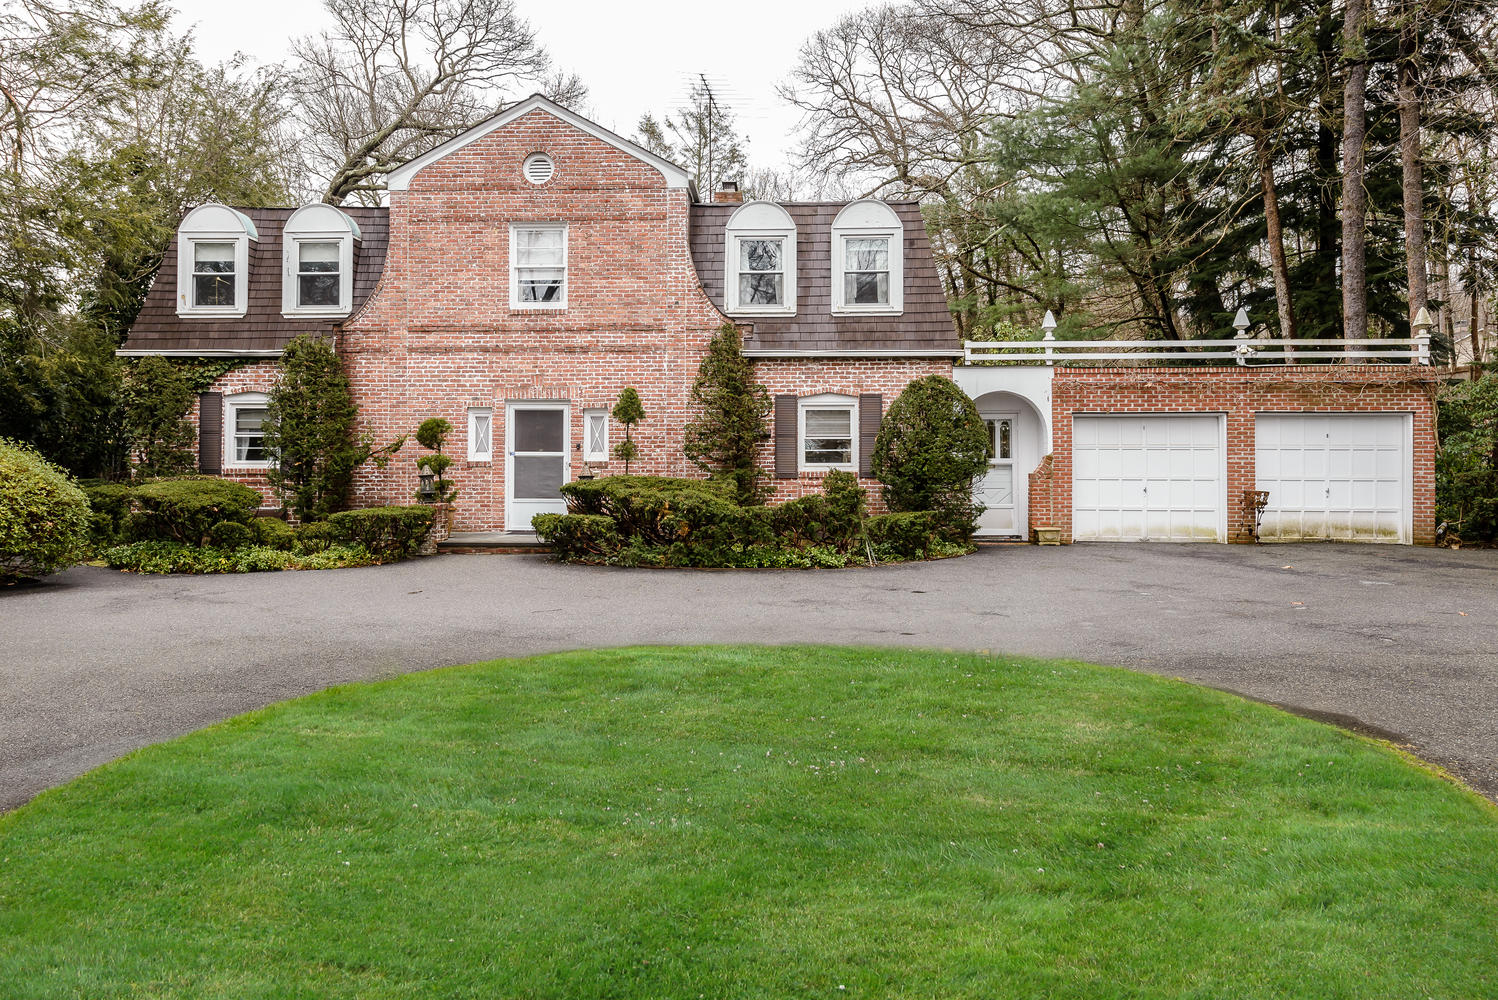 Single Family Home for Sale at Colonial 11 Pine Rd Syosset, New York, 11791 United States